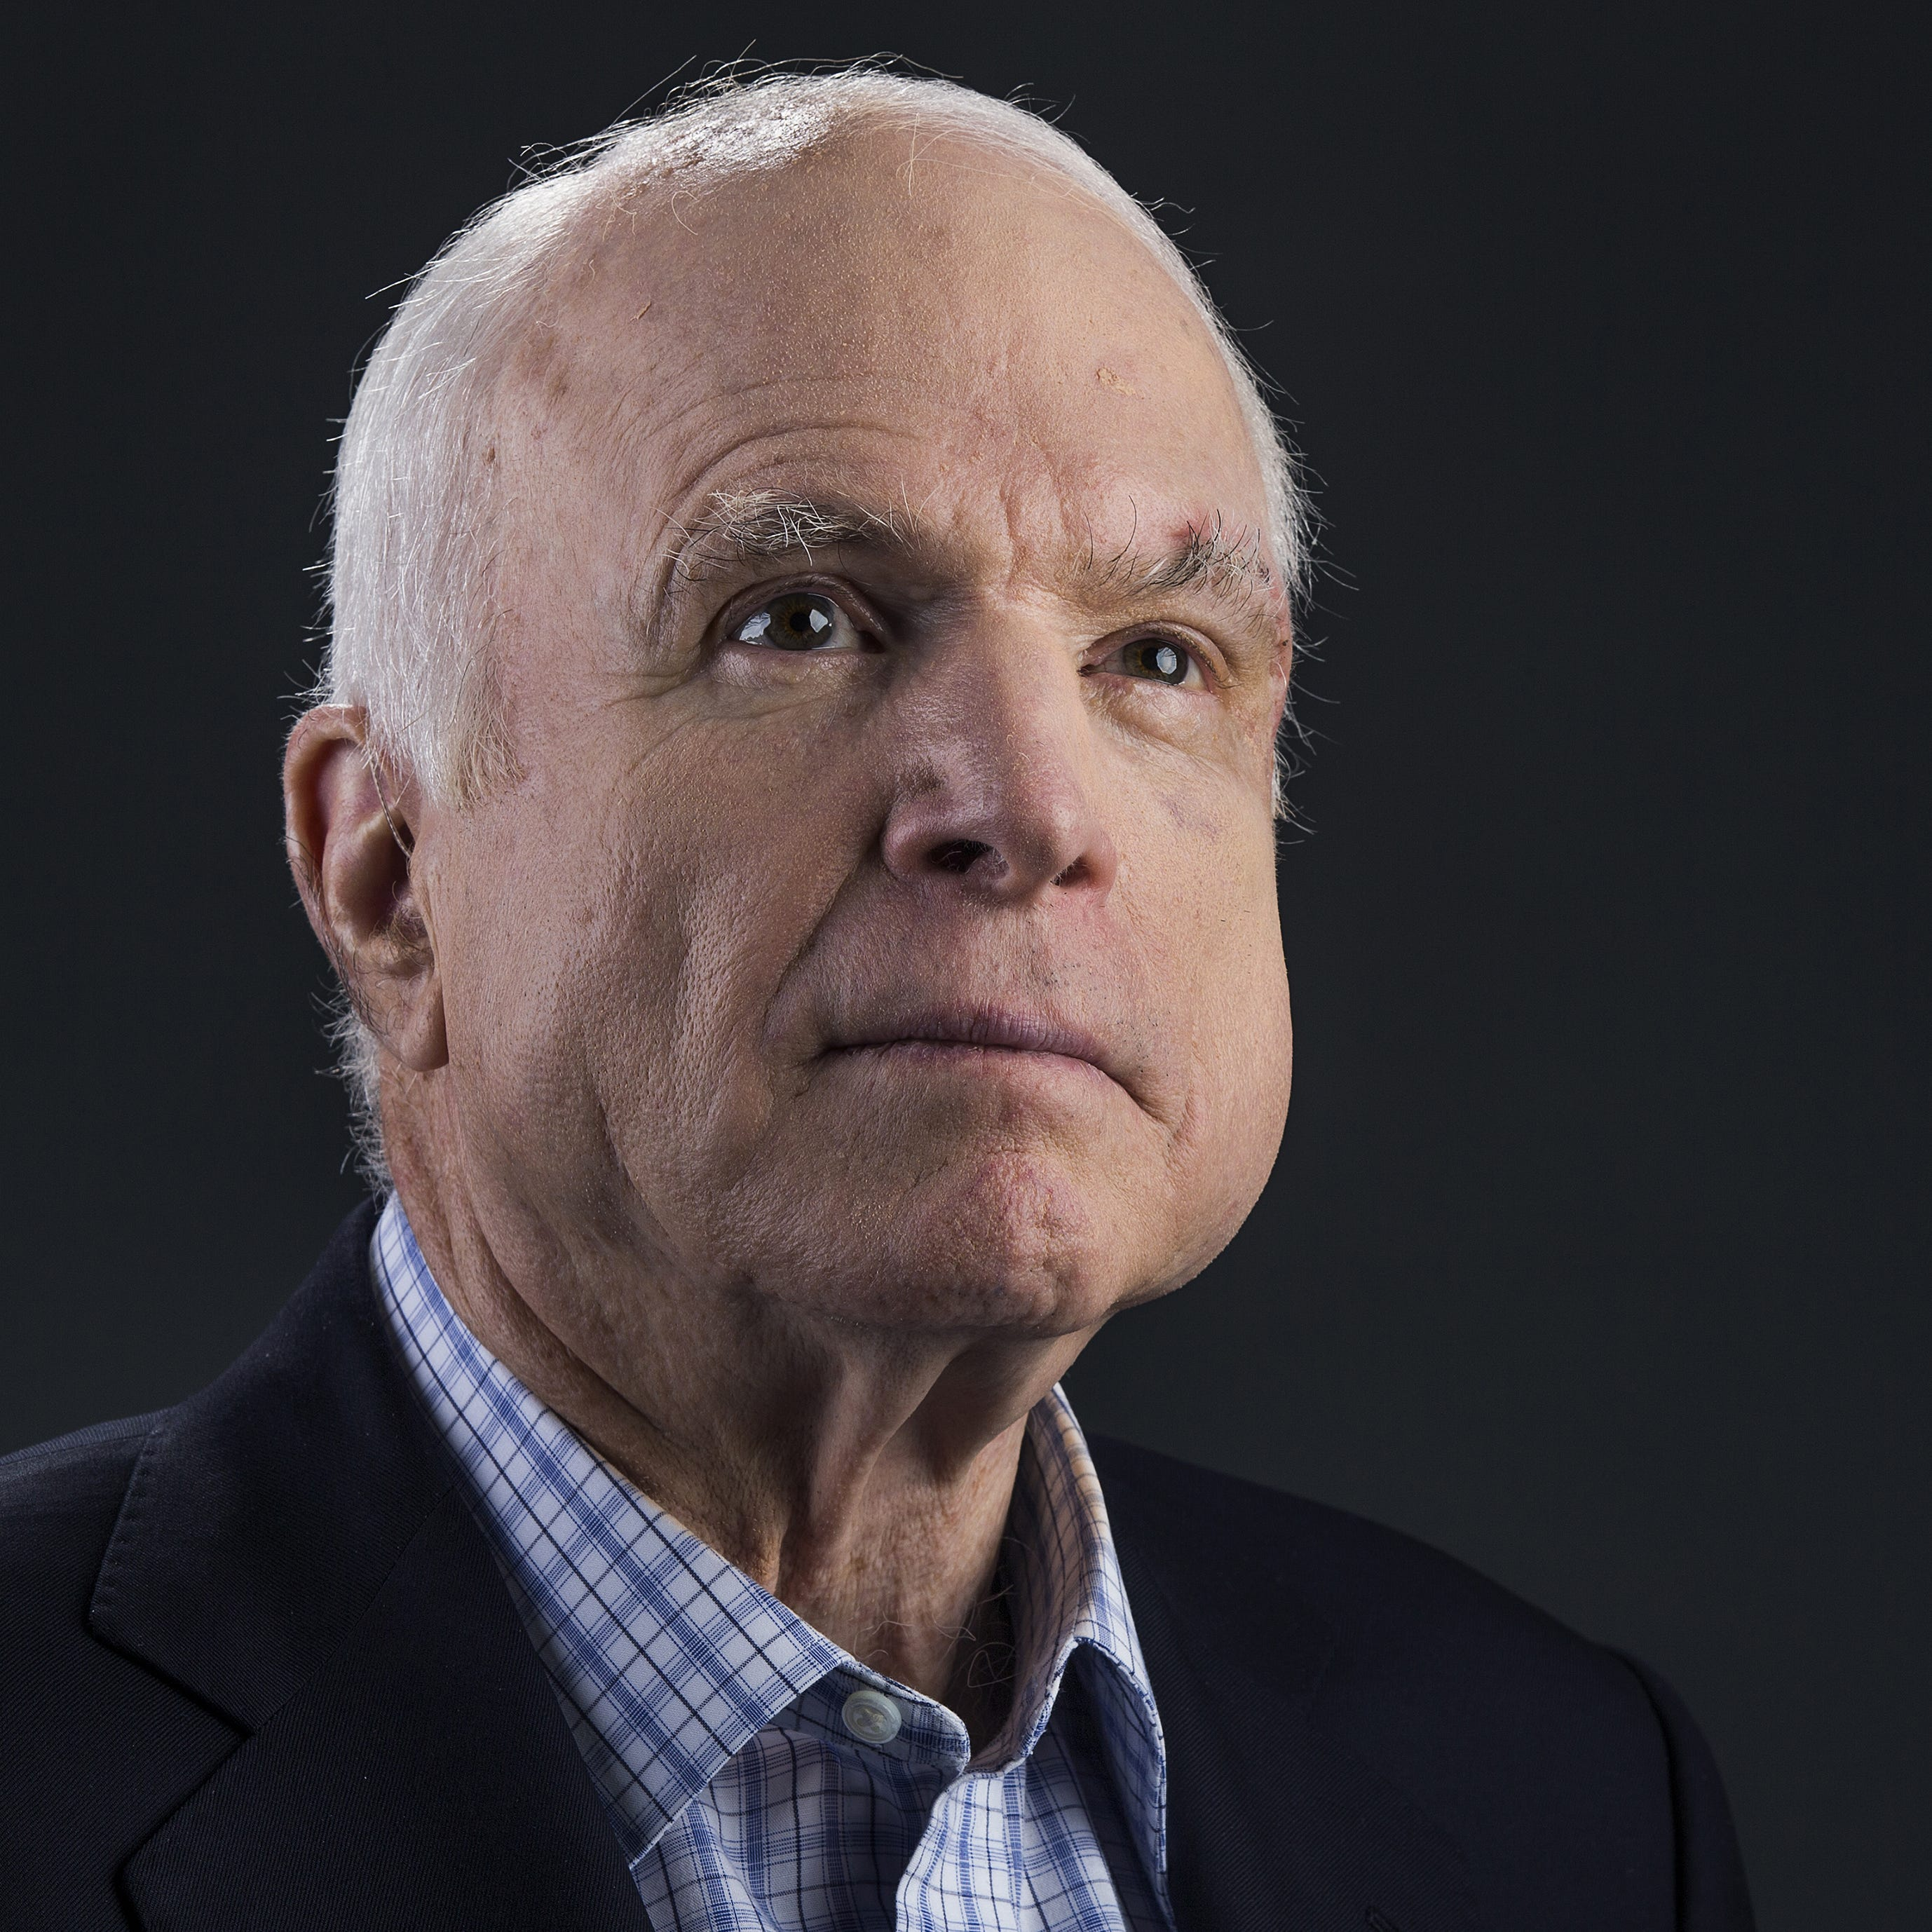 Sen. John McCain poses at the Republic Media building in downtown Phoenix, Thursday August 3, 2017.